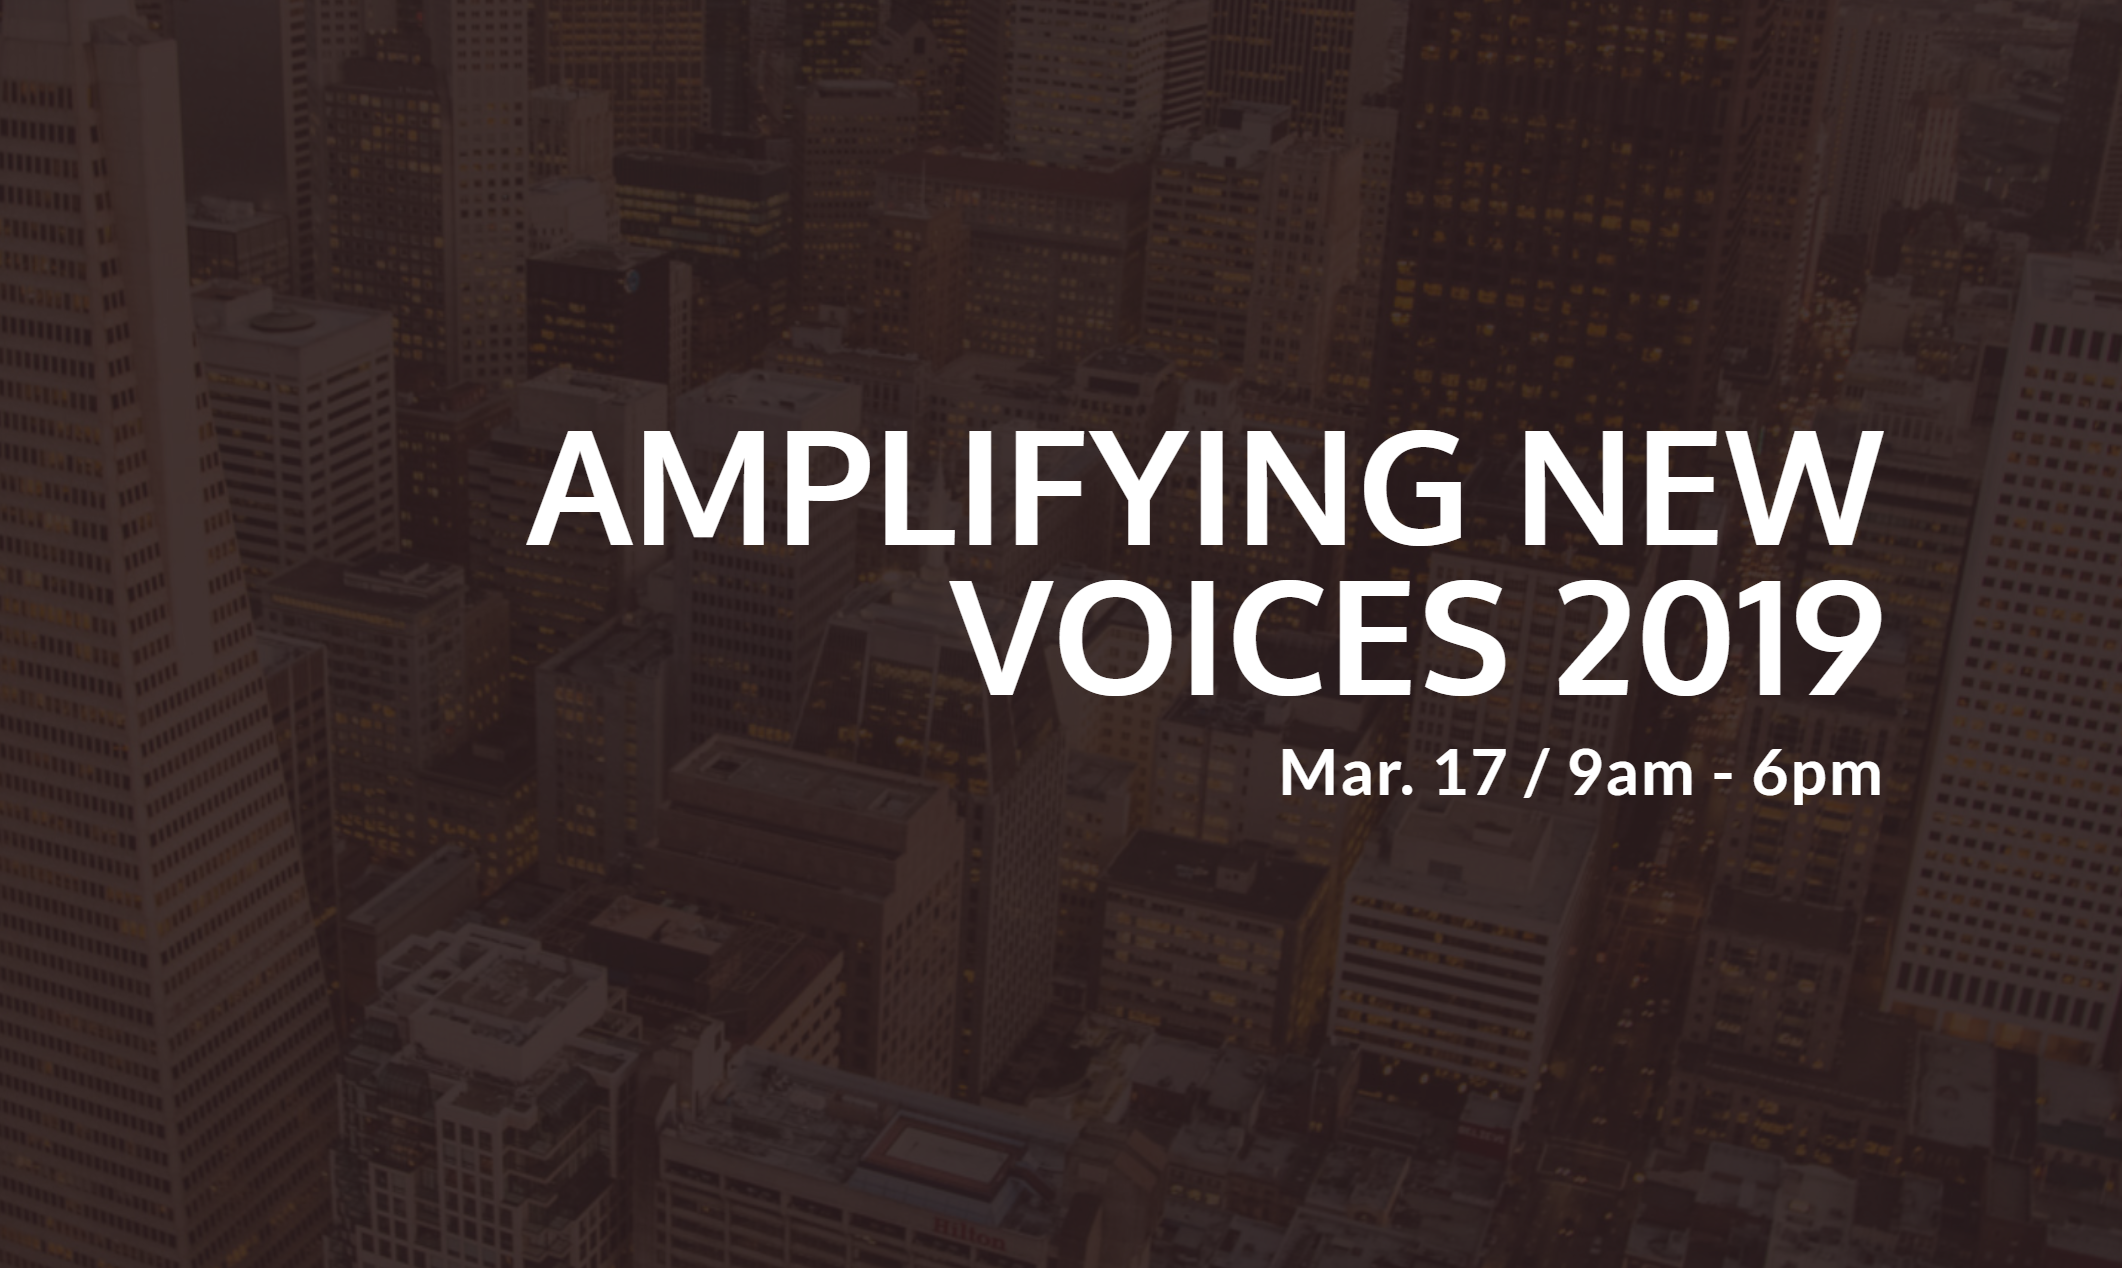 Awarded a GDC scholarship with the Amplifying New Voices 2019